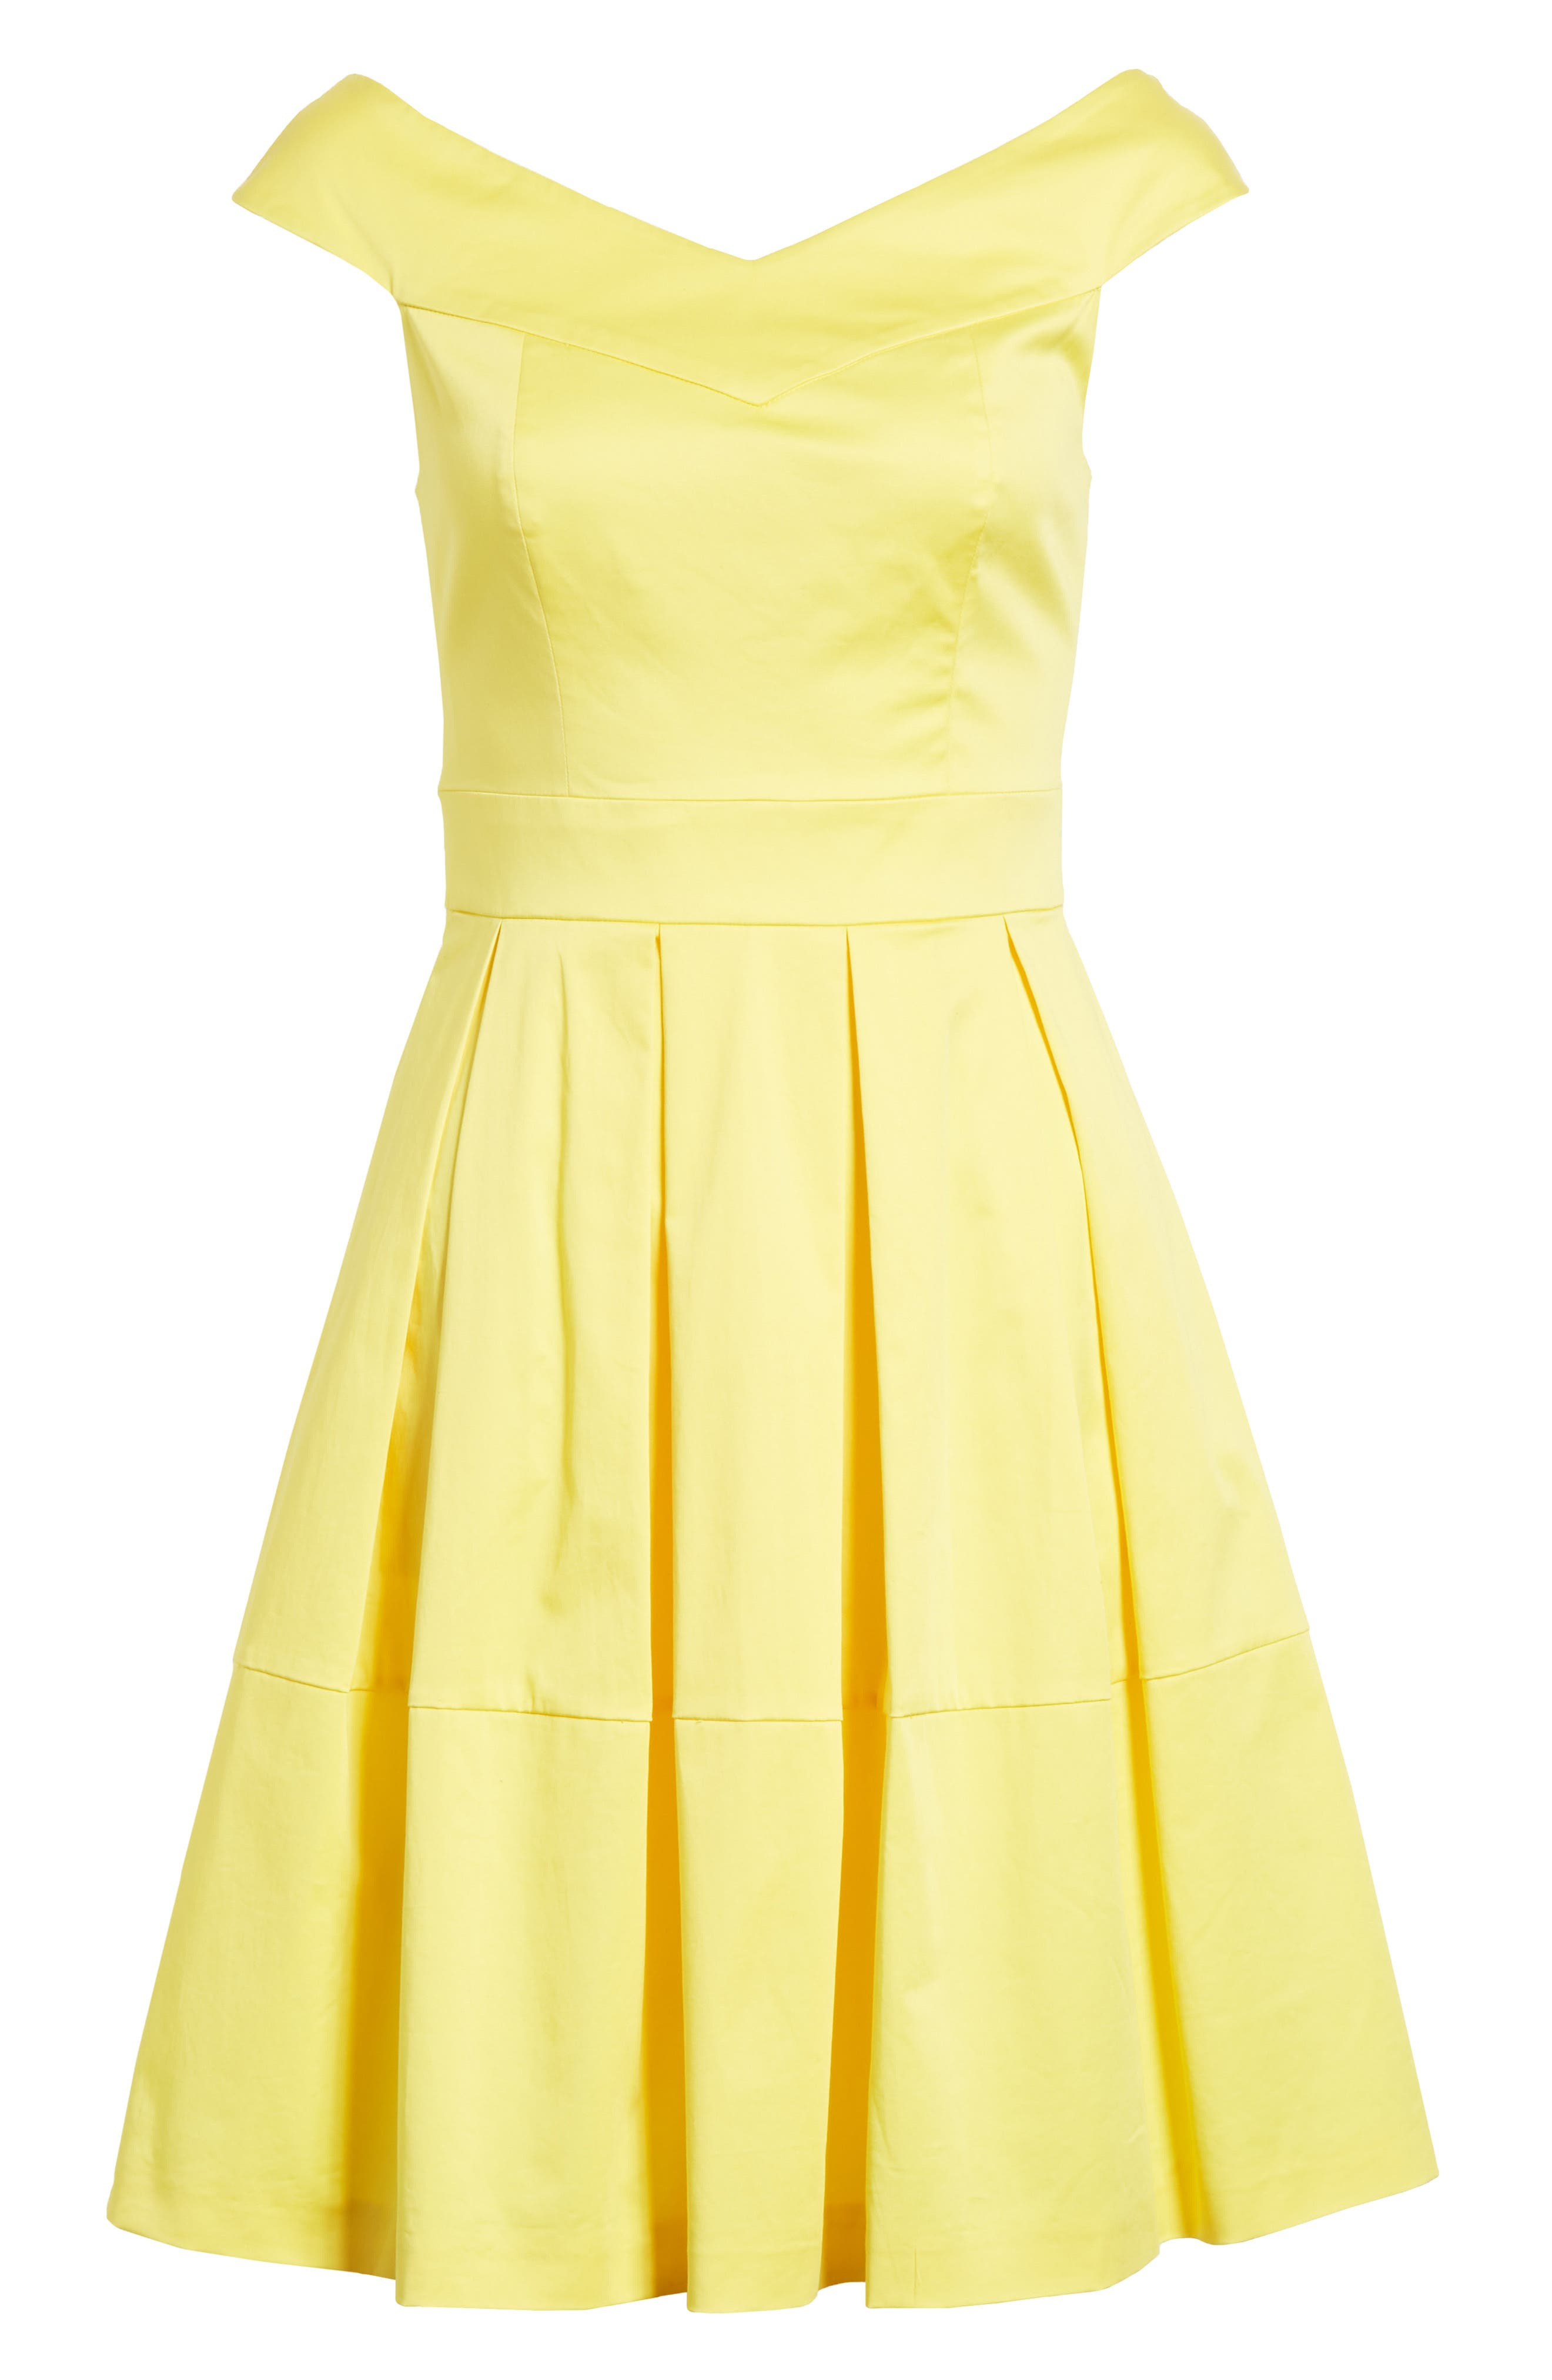 Jullee Off the Shoulder Stretch Cotton Dress,                             Alternate thumbnail 6, color,                             Yellow